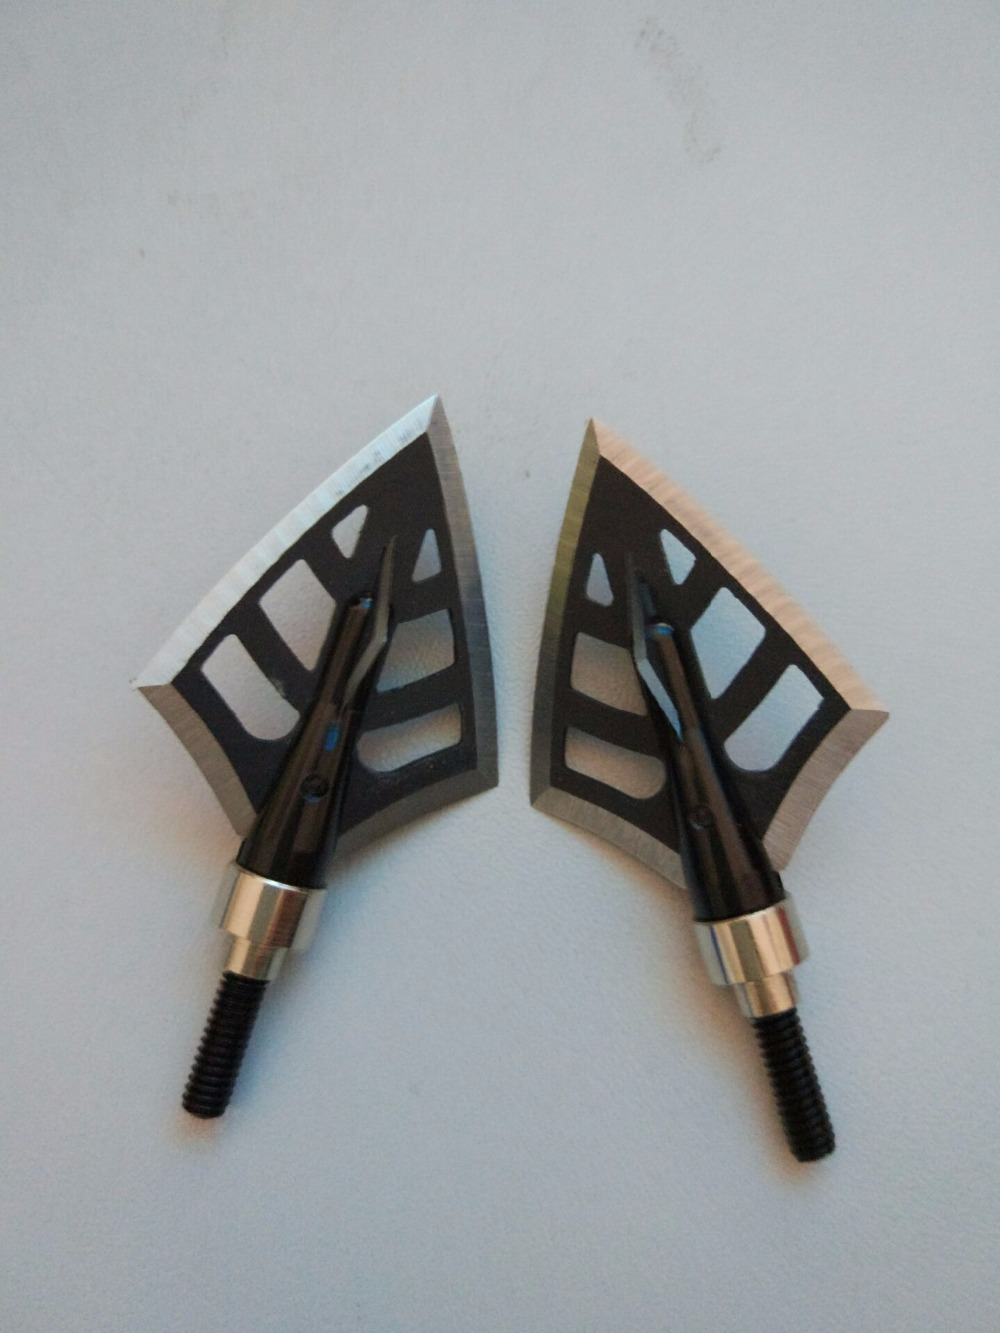 3pcs/6pcs Archery Arrow Broadheads Dirt Nap Gear 125 Grain 2 Blades Hunting Points Arrow Tips Arrowheads